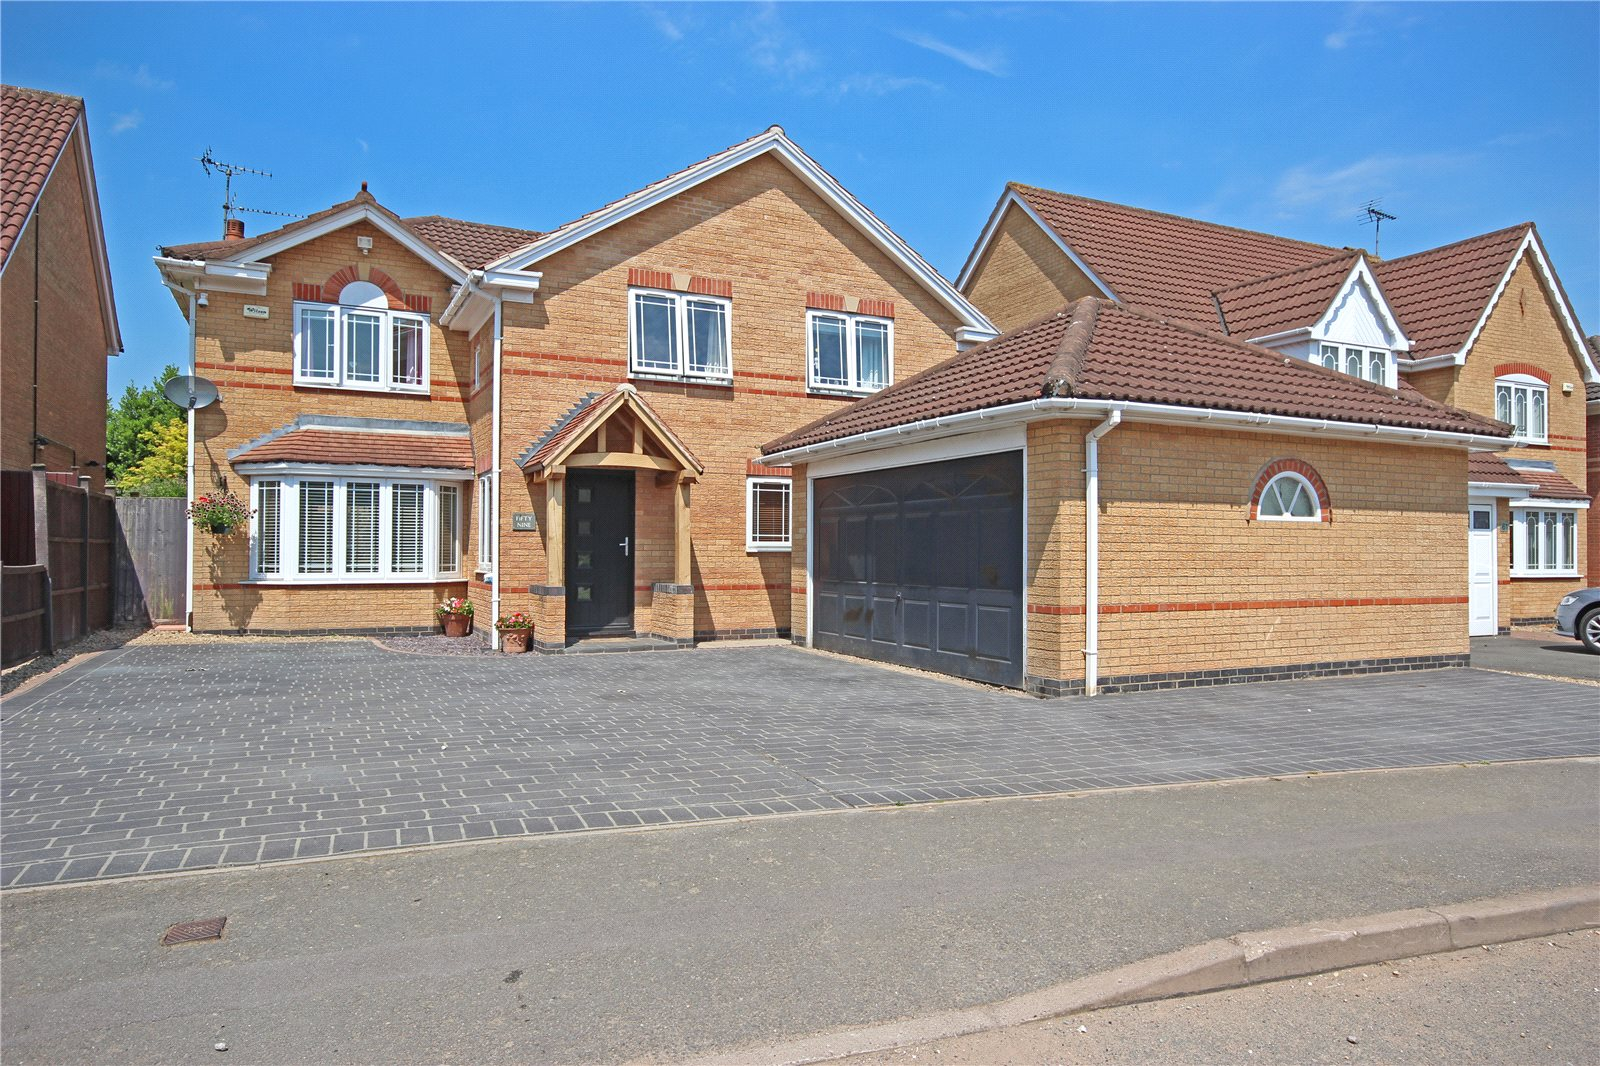 forest house lane leicester forest east leicester le3 image 1 - 6 Bedroom House For Sale